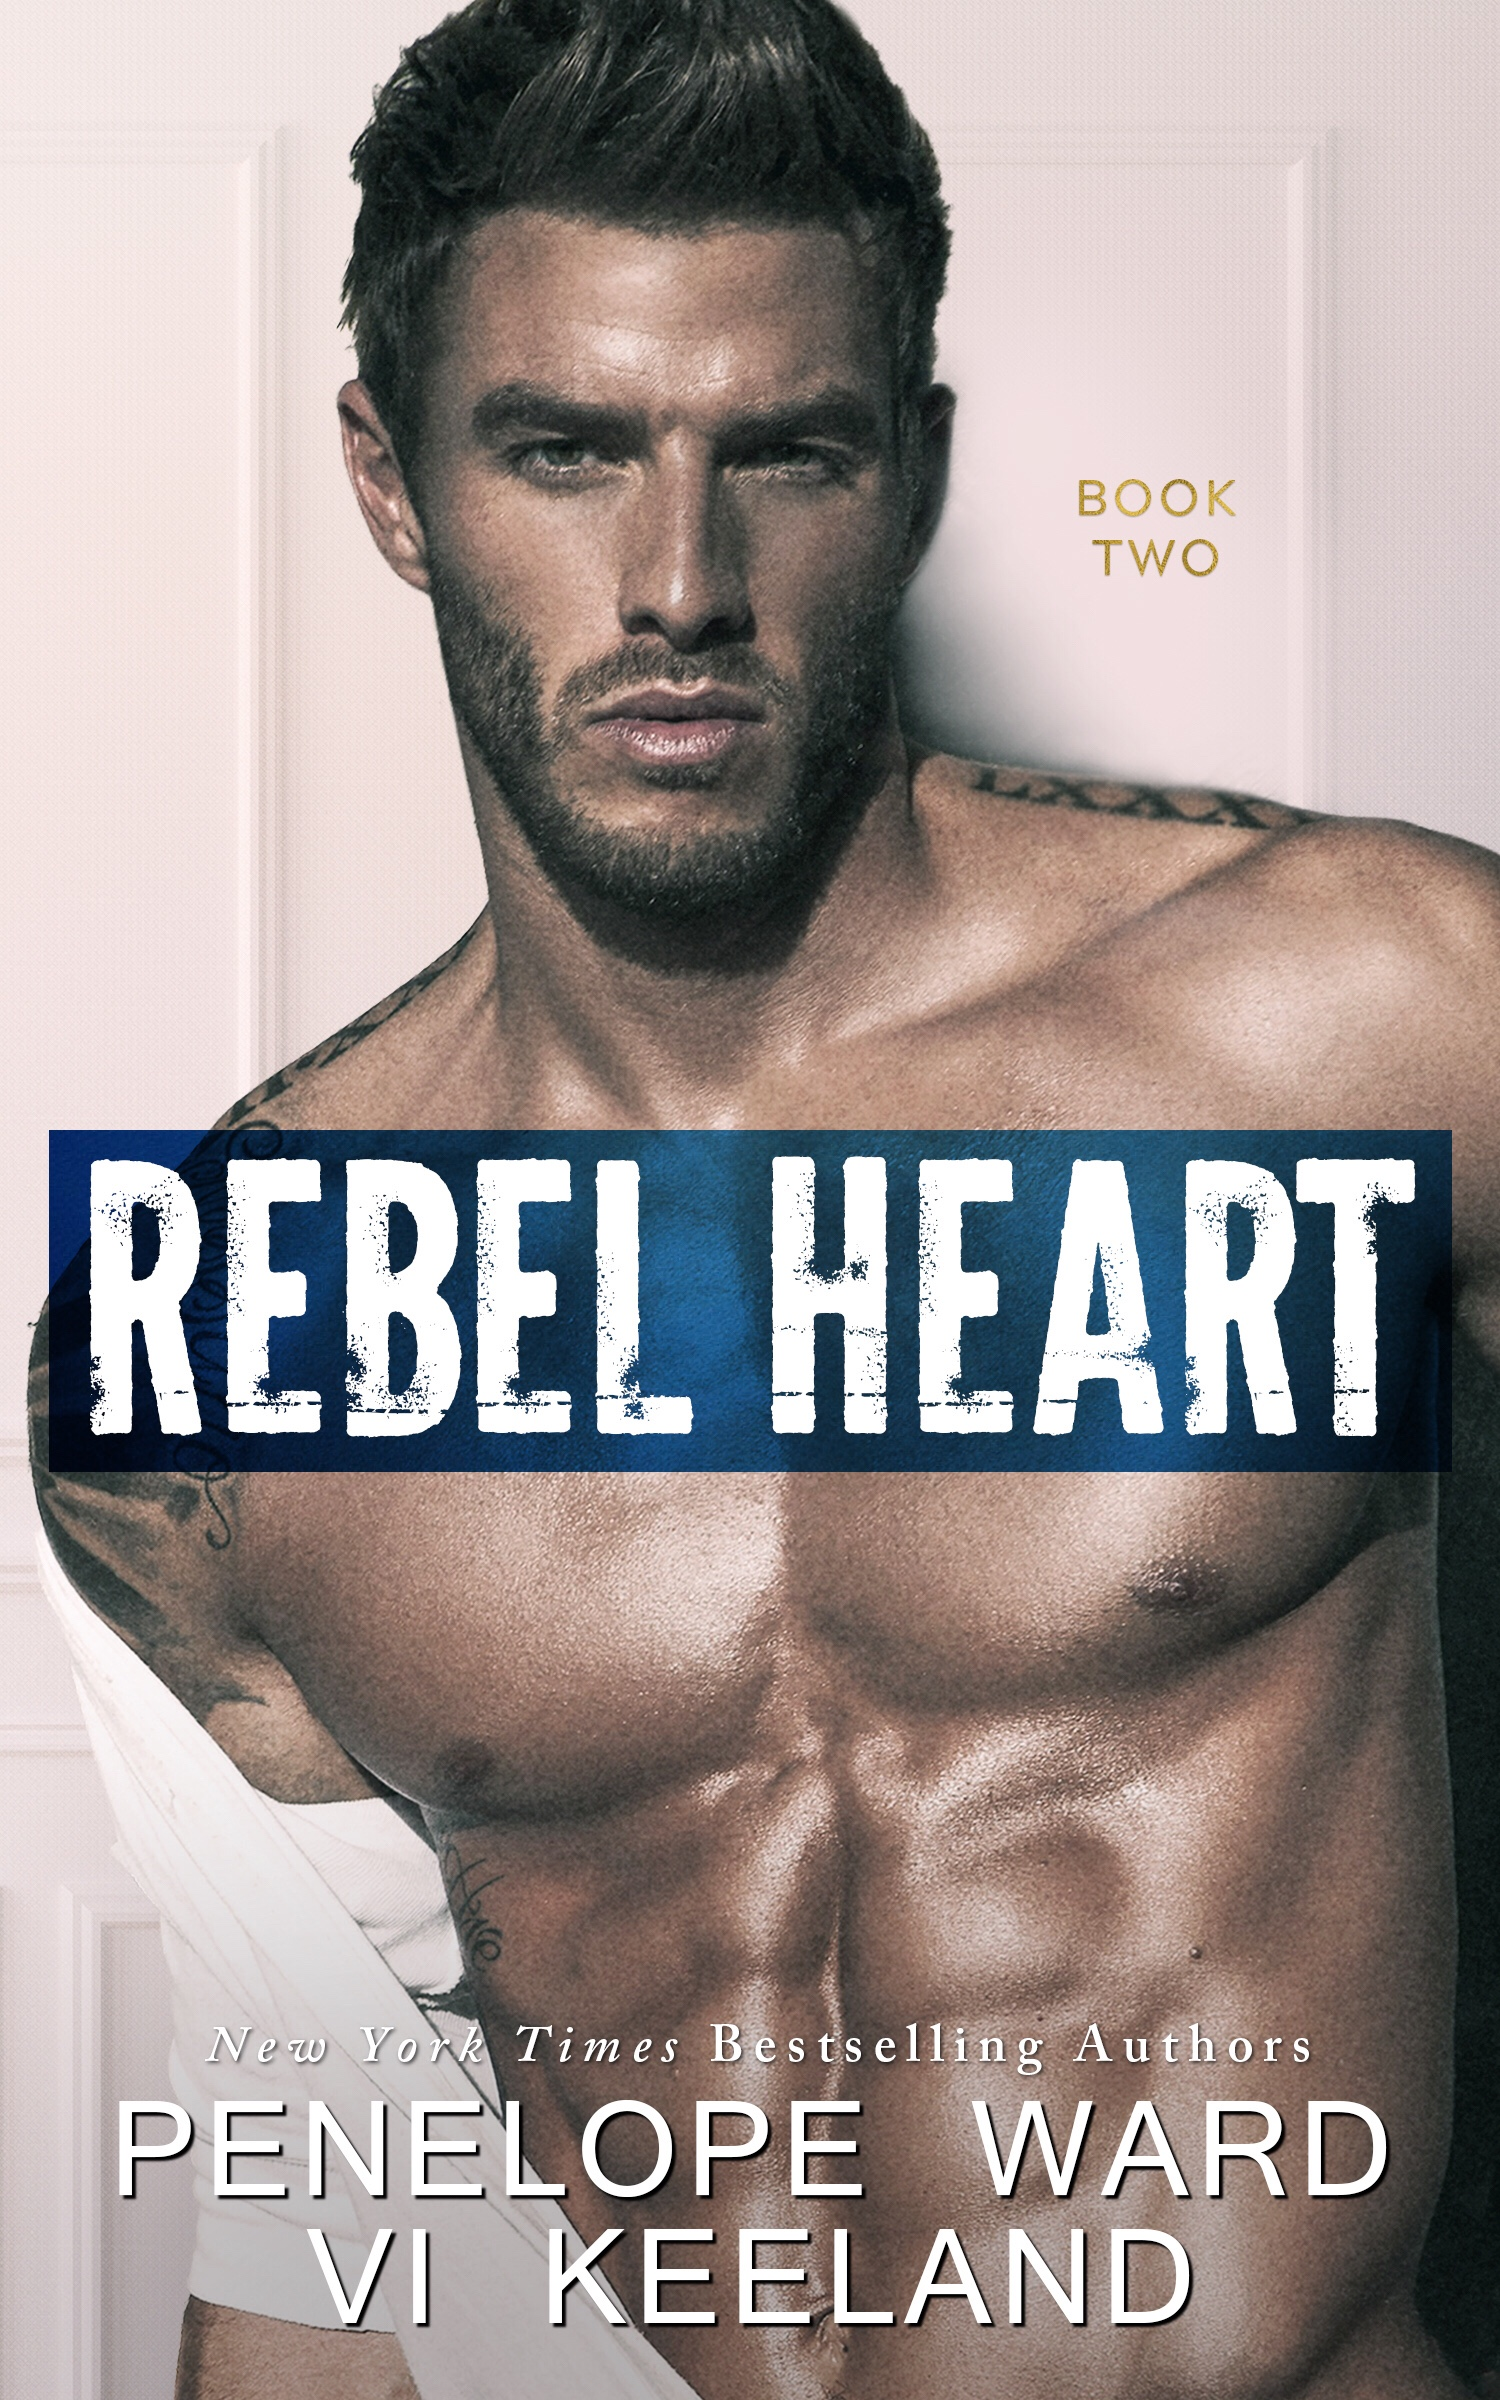 REBEL HEART by Penelope Ward & Vi Keeland